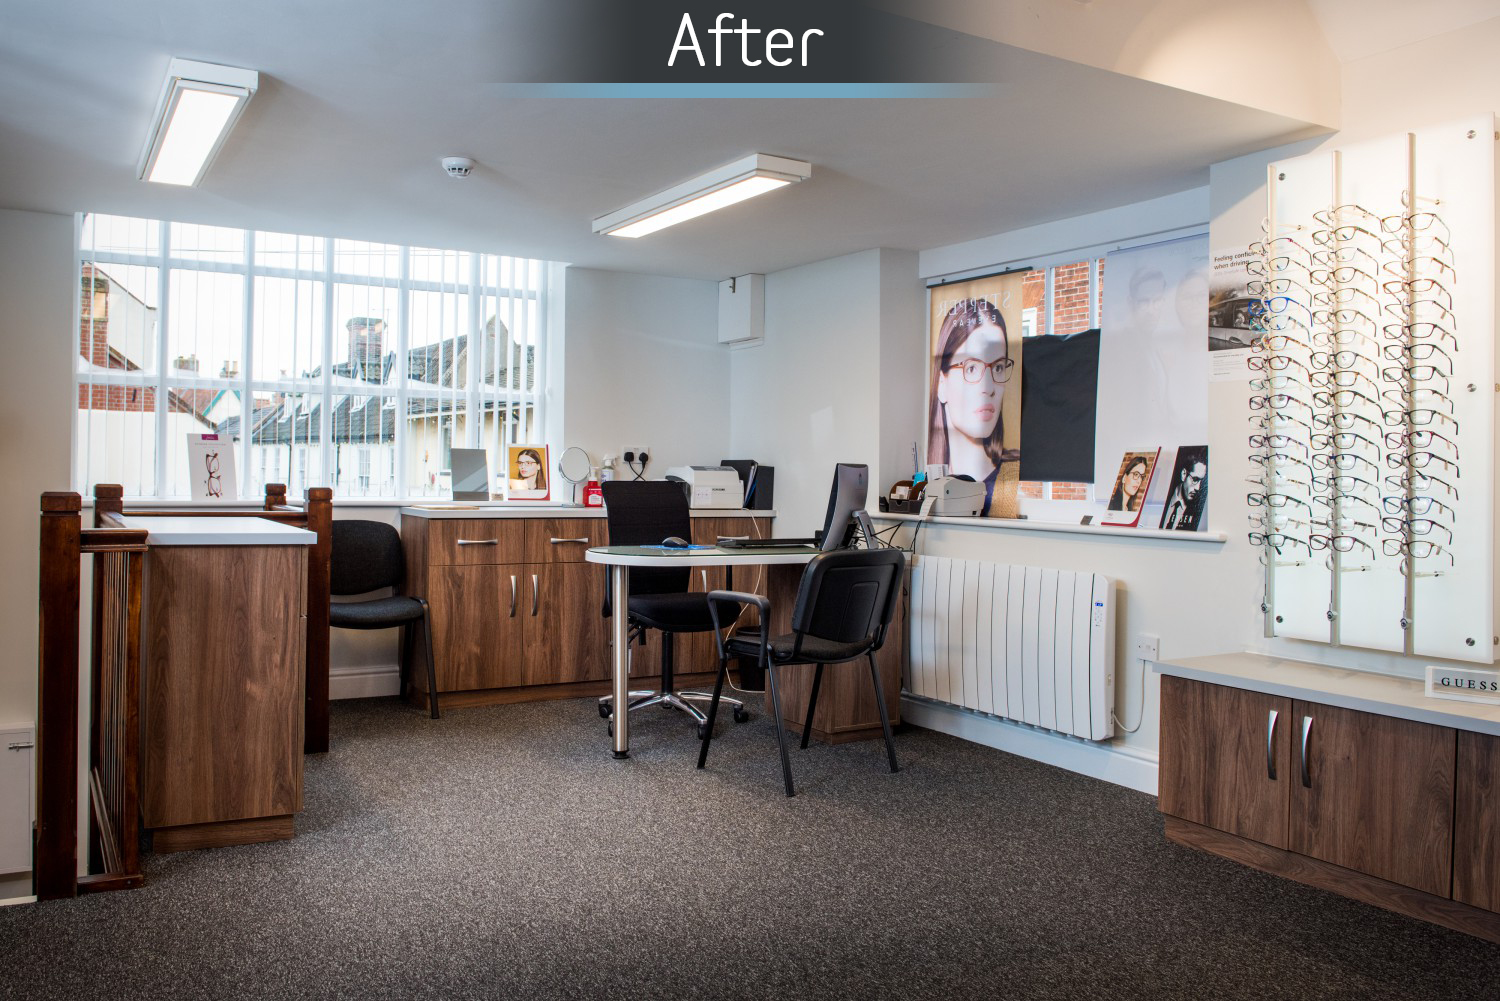 Martin Storey opticians dispensing after commercial Interior design and refurbishment by Mewscraft